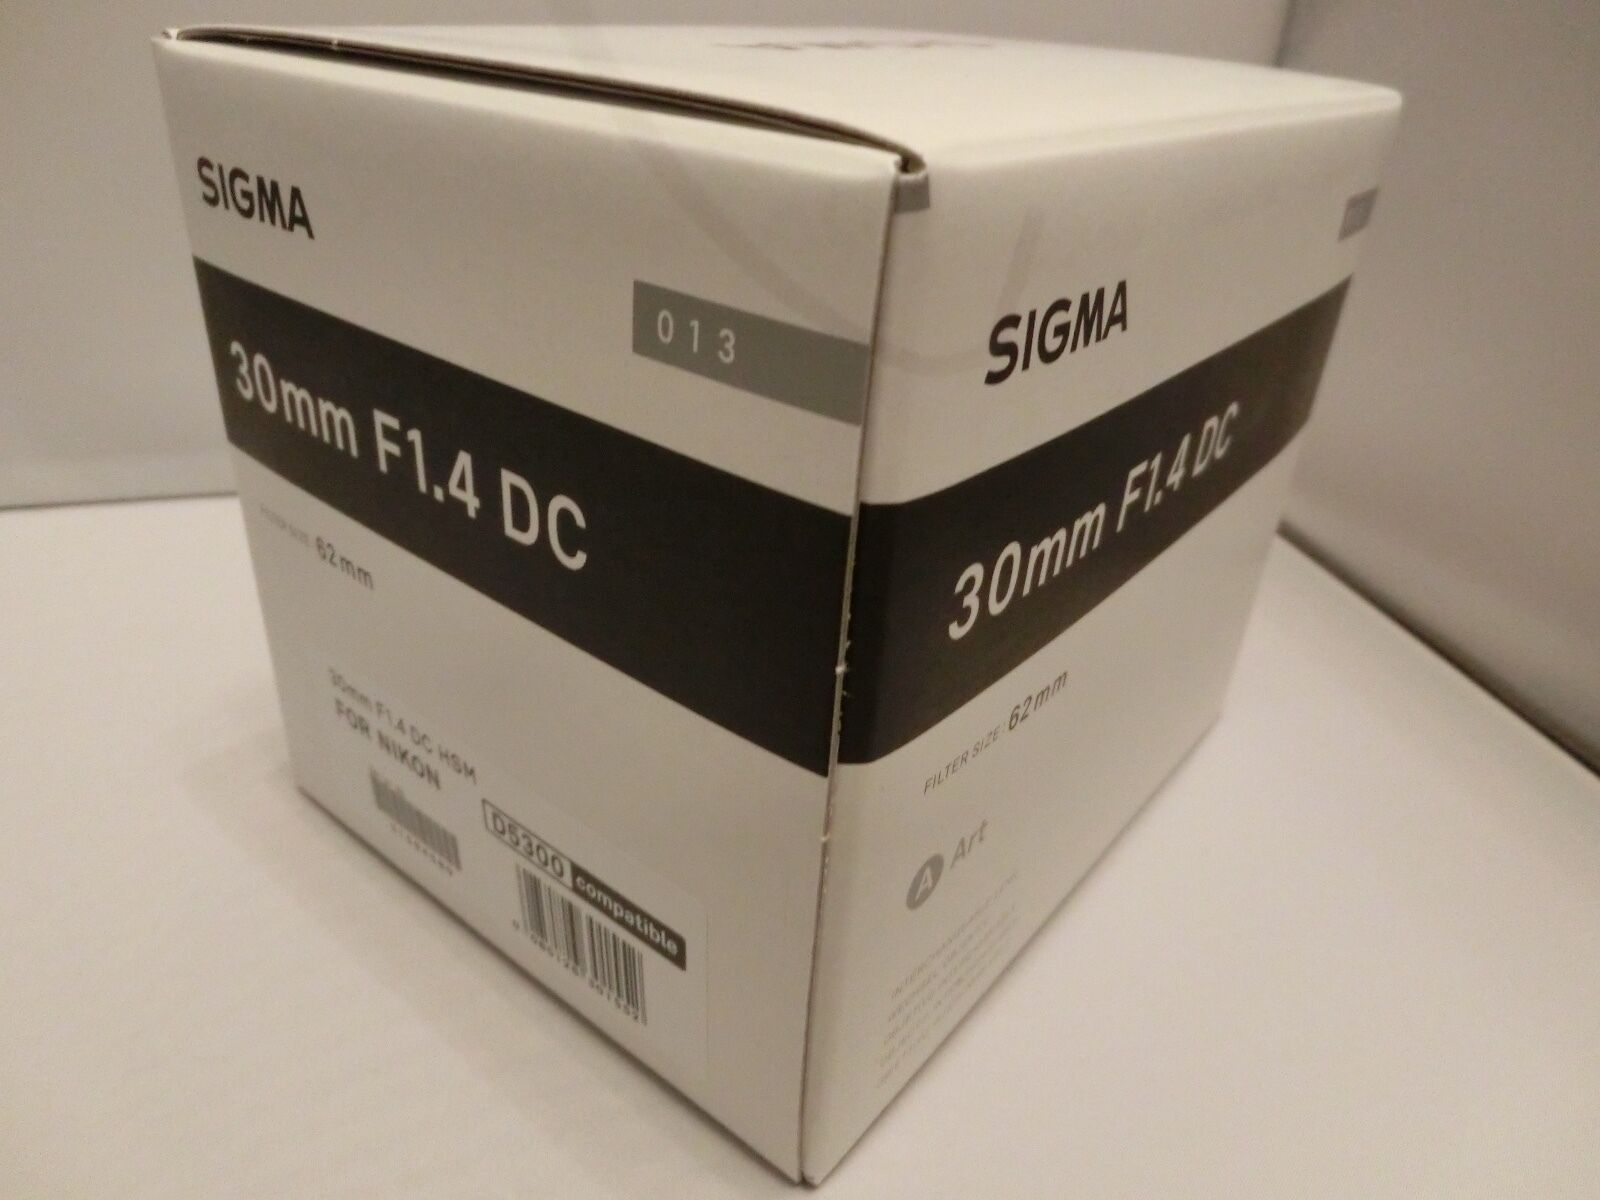 Brand New Sigma 30mm F14 Dc Hsm Art Black Lens For Nikon F Mount 14 A Canon 1 Of 2only Available